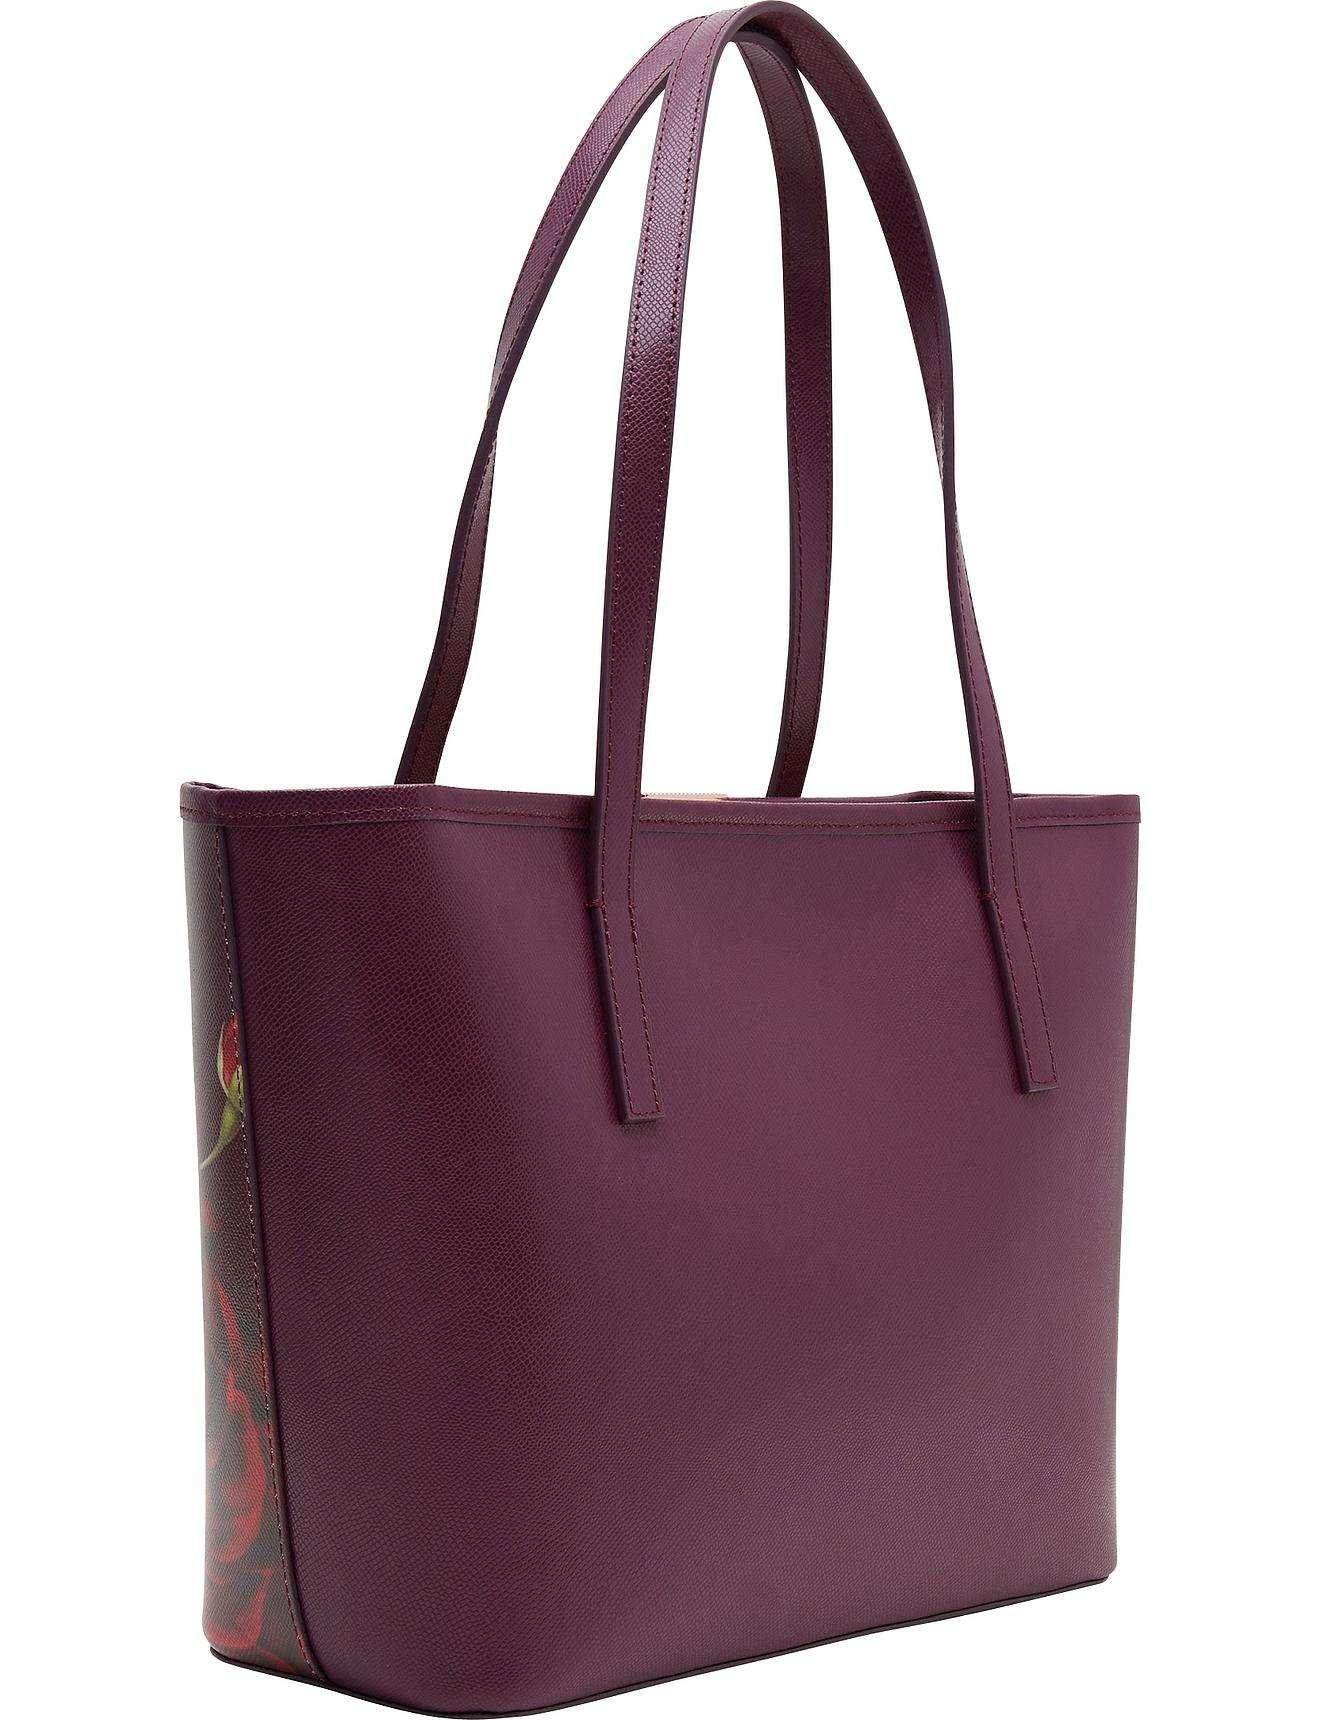 2cfe47d60fd0 Ted Baker Maura Juxtaposed Rose Small Leather Shopper - Lyst